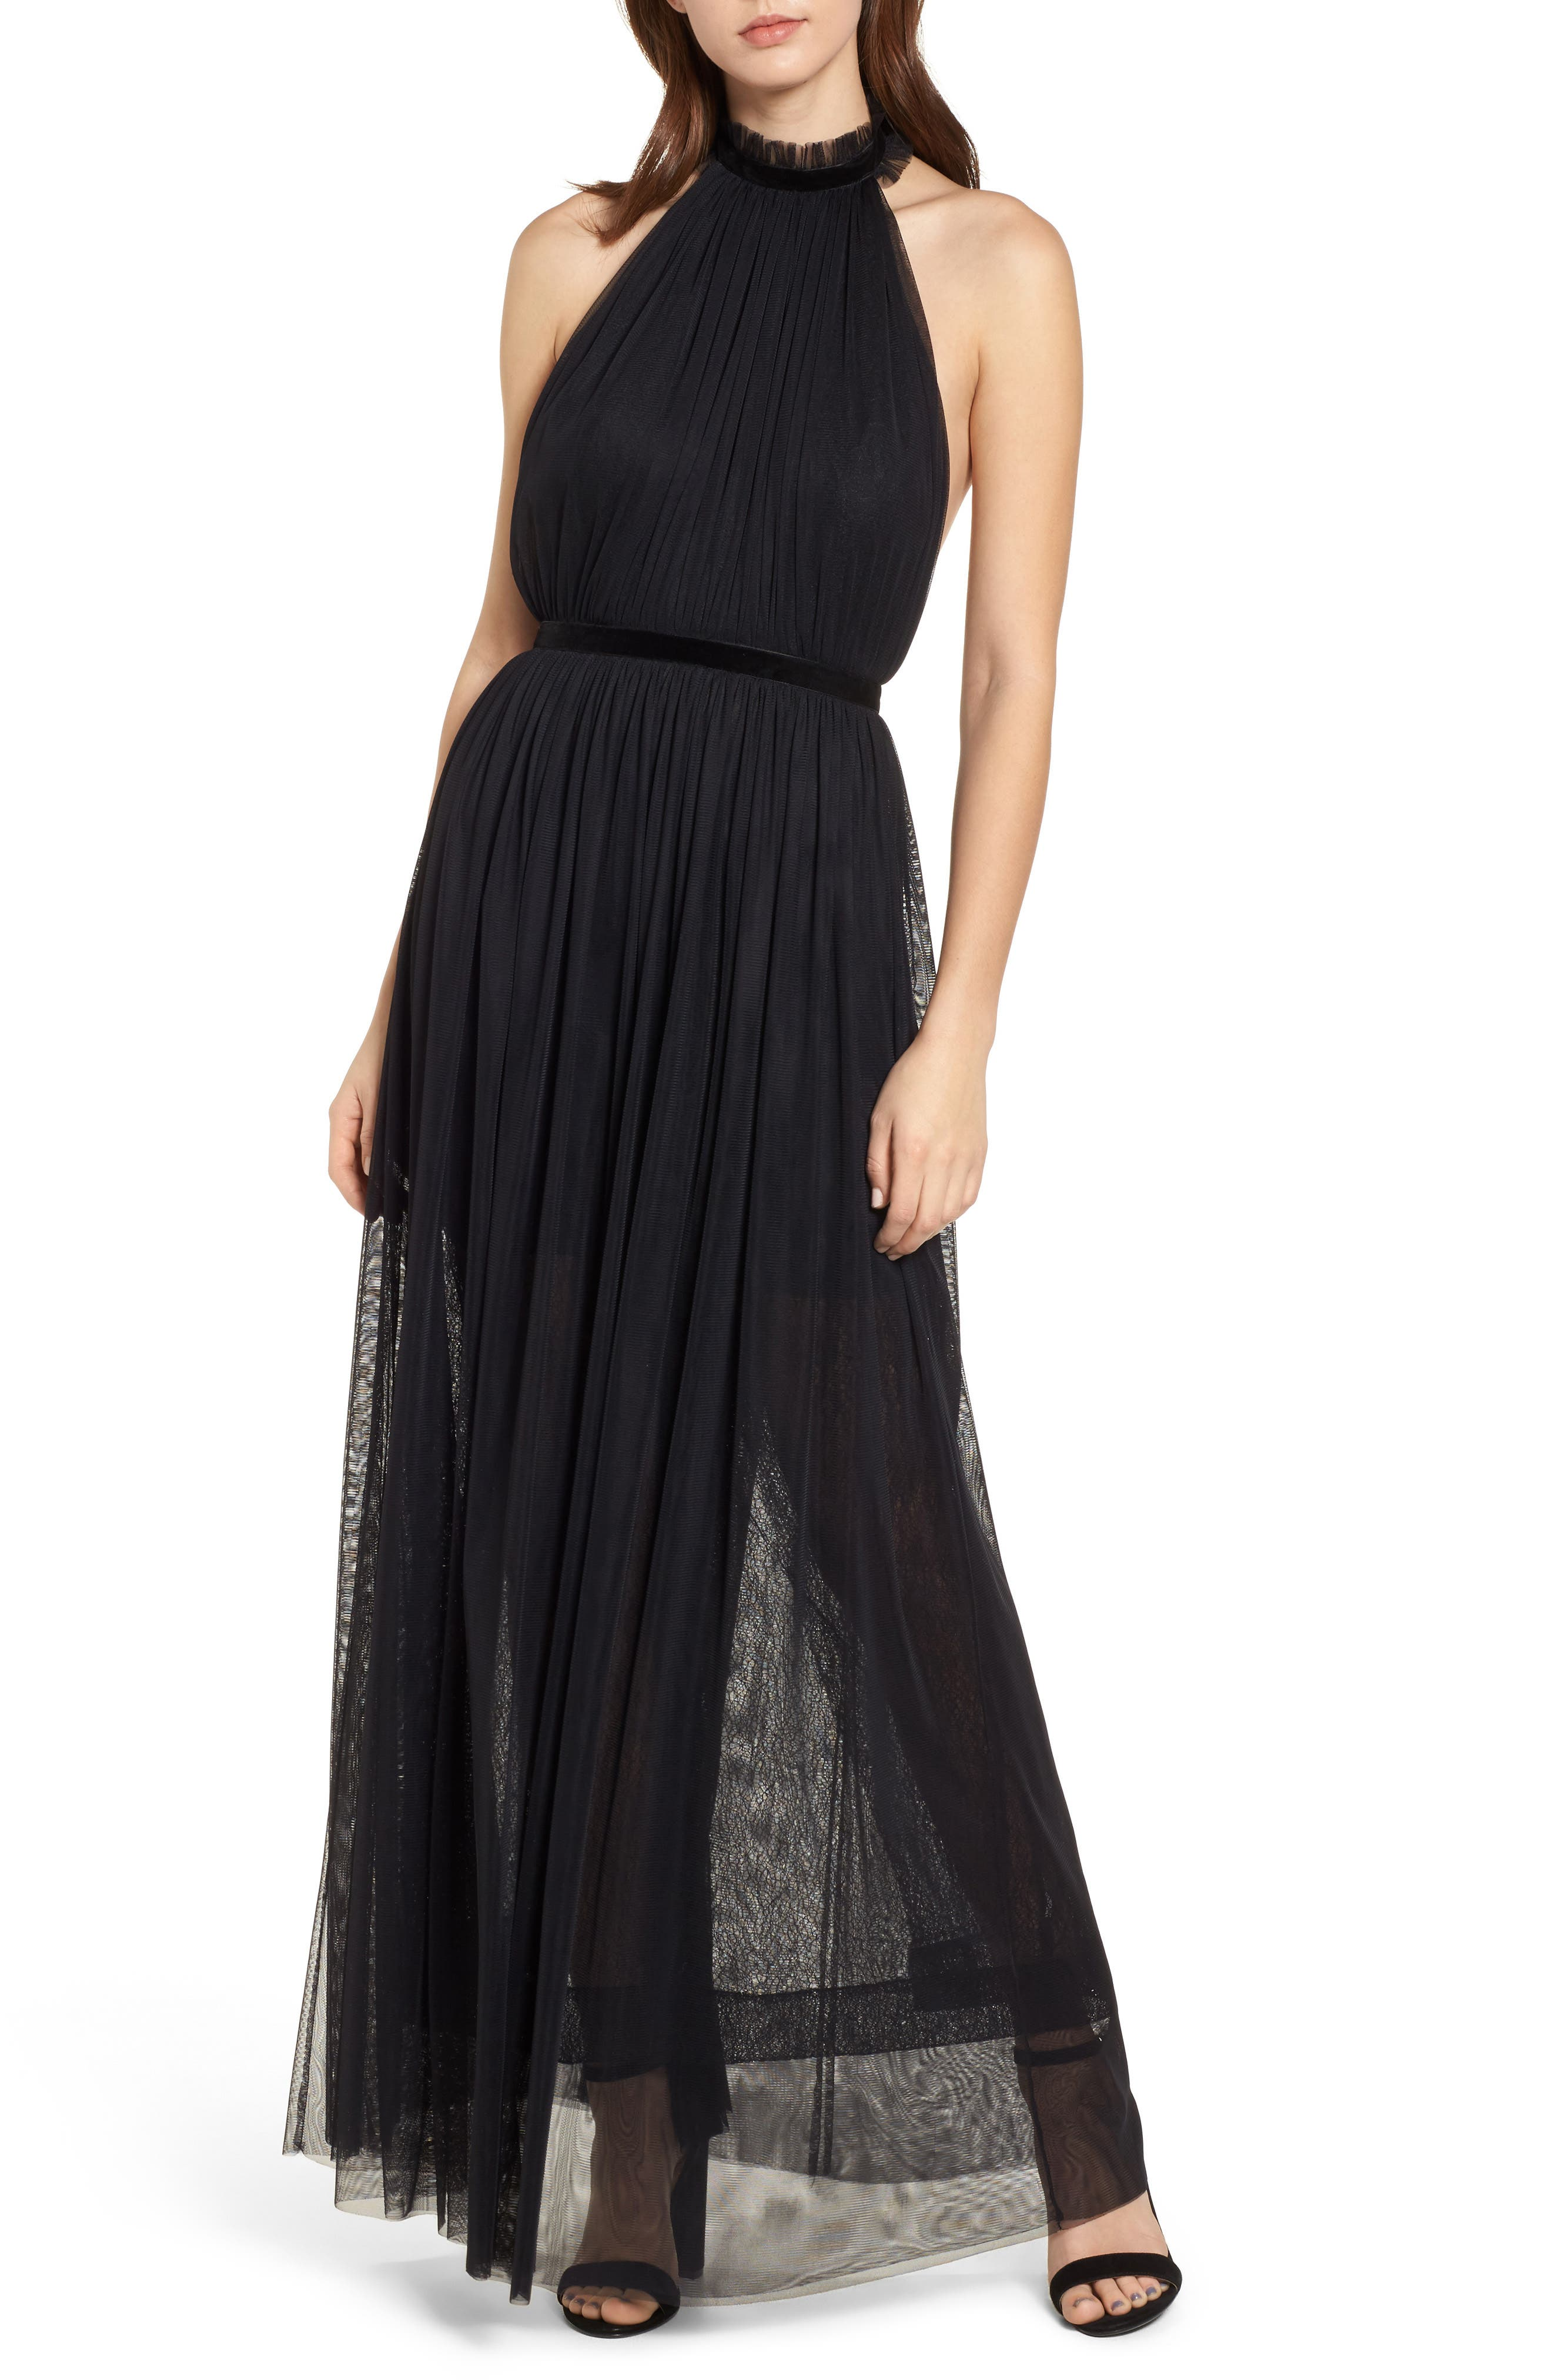 Topshop Taylor Halter Maxi Dress